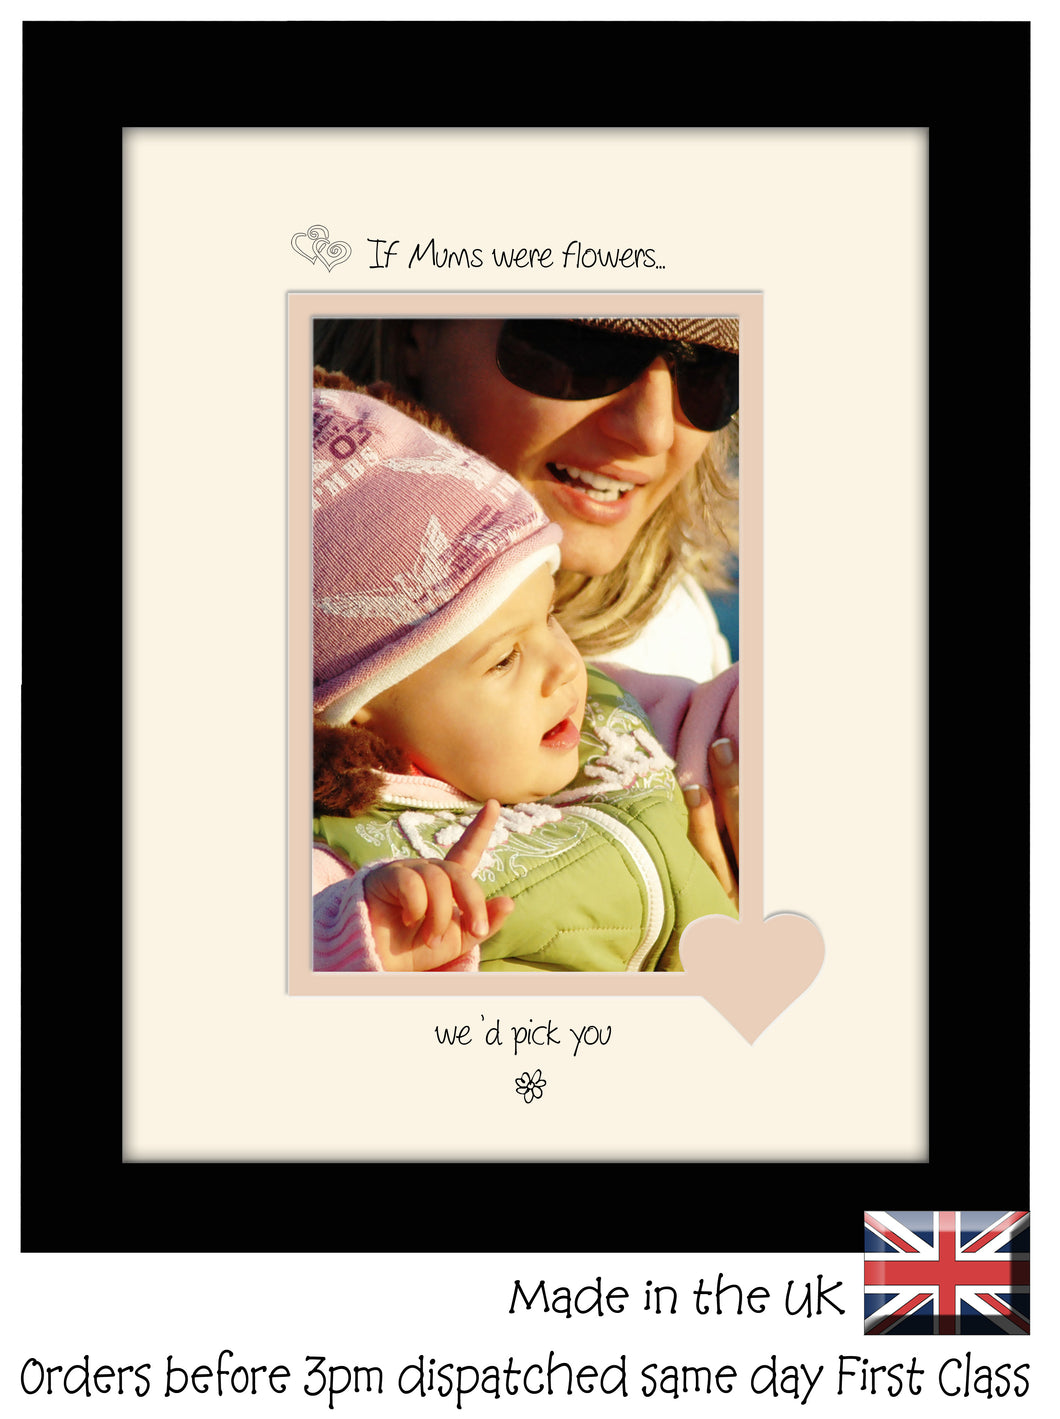 Mum Photo Frame - If Mums were flowers… we'd pick you Portrait photo frame 6